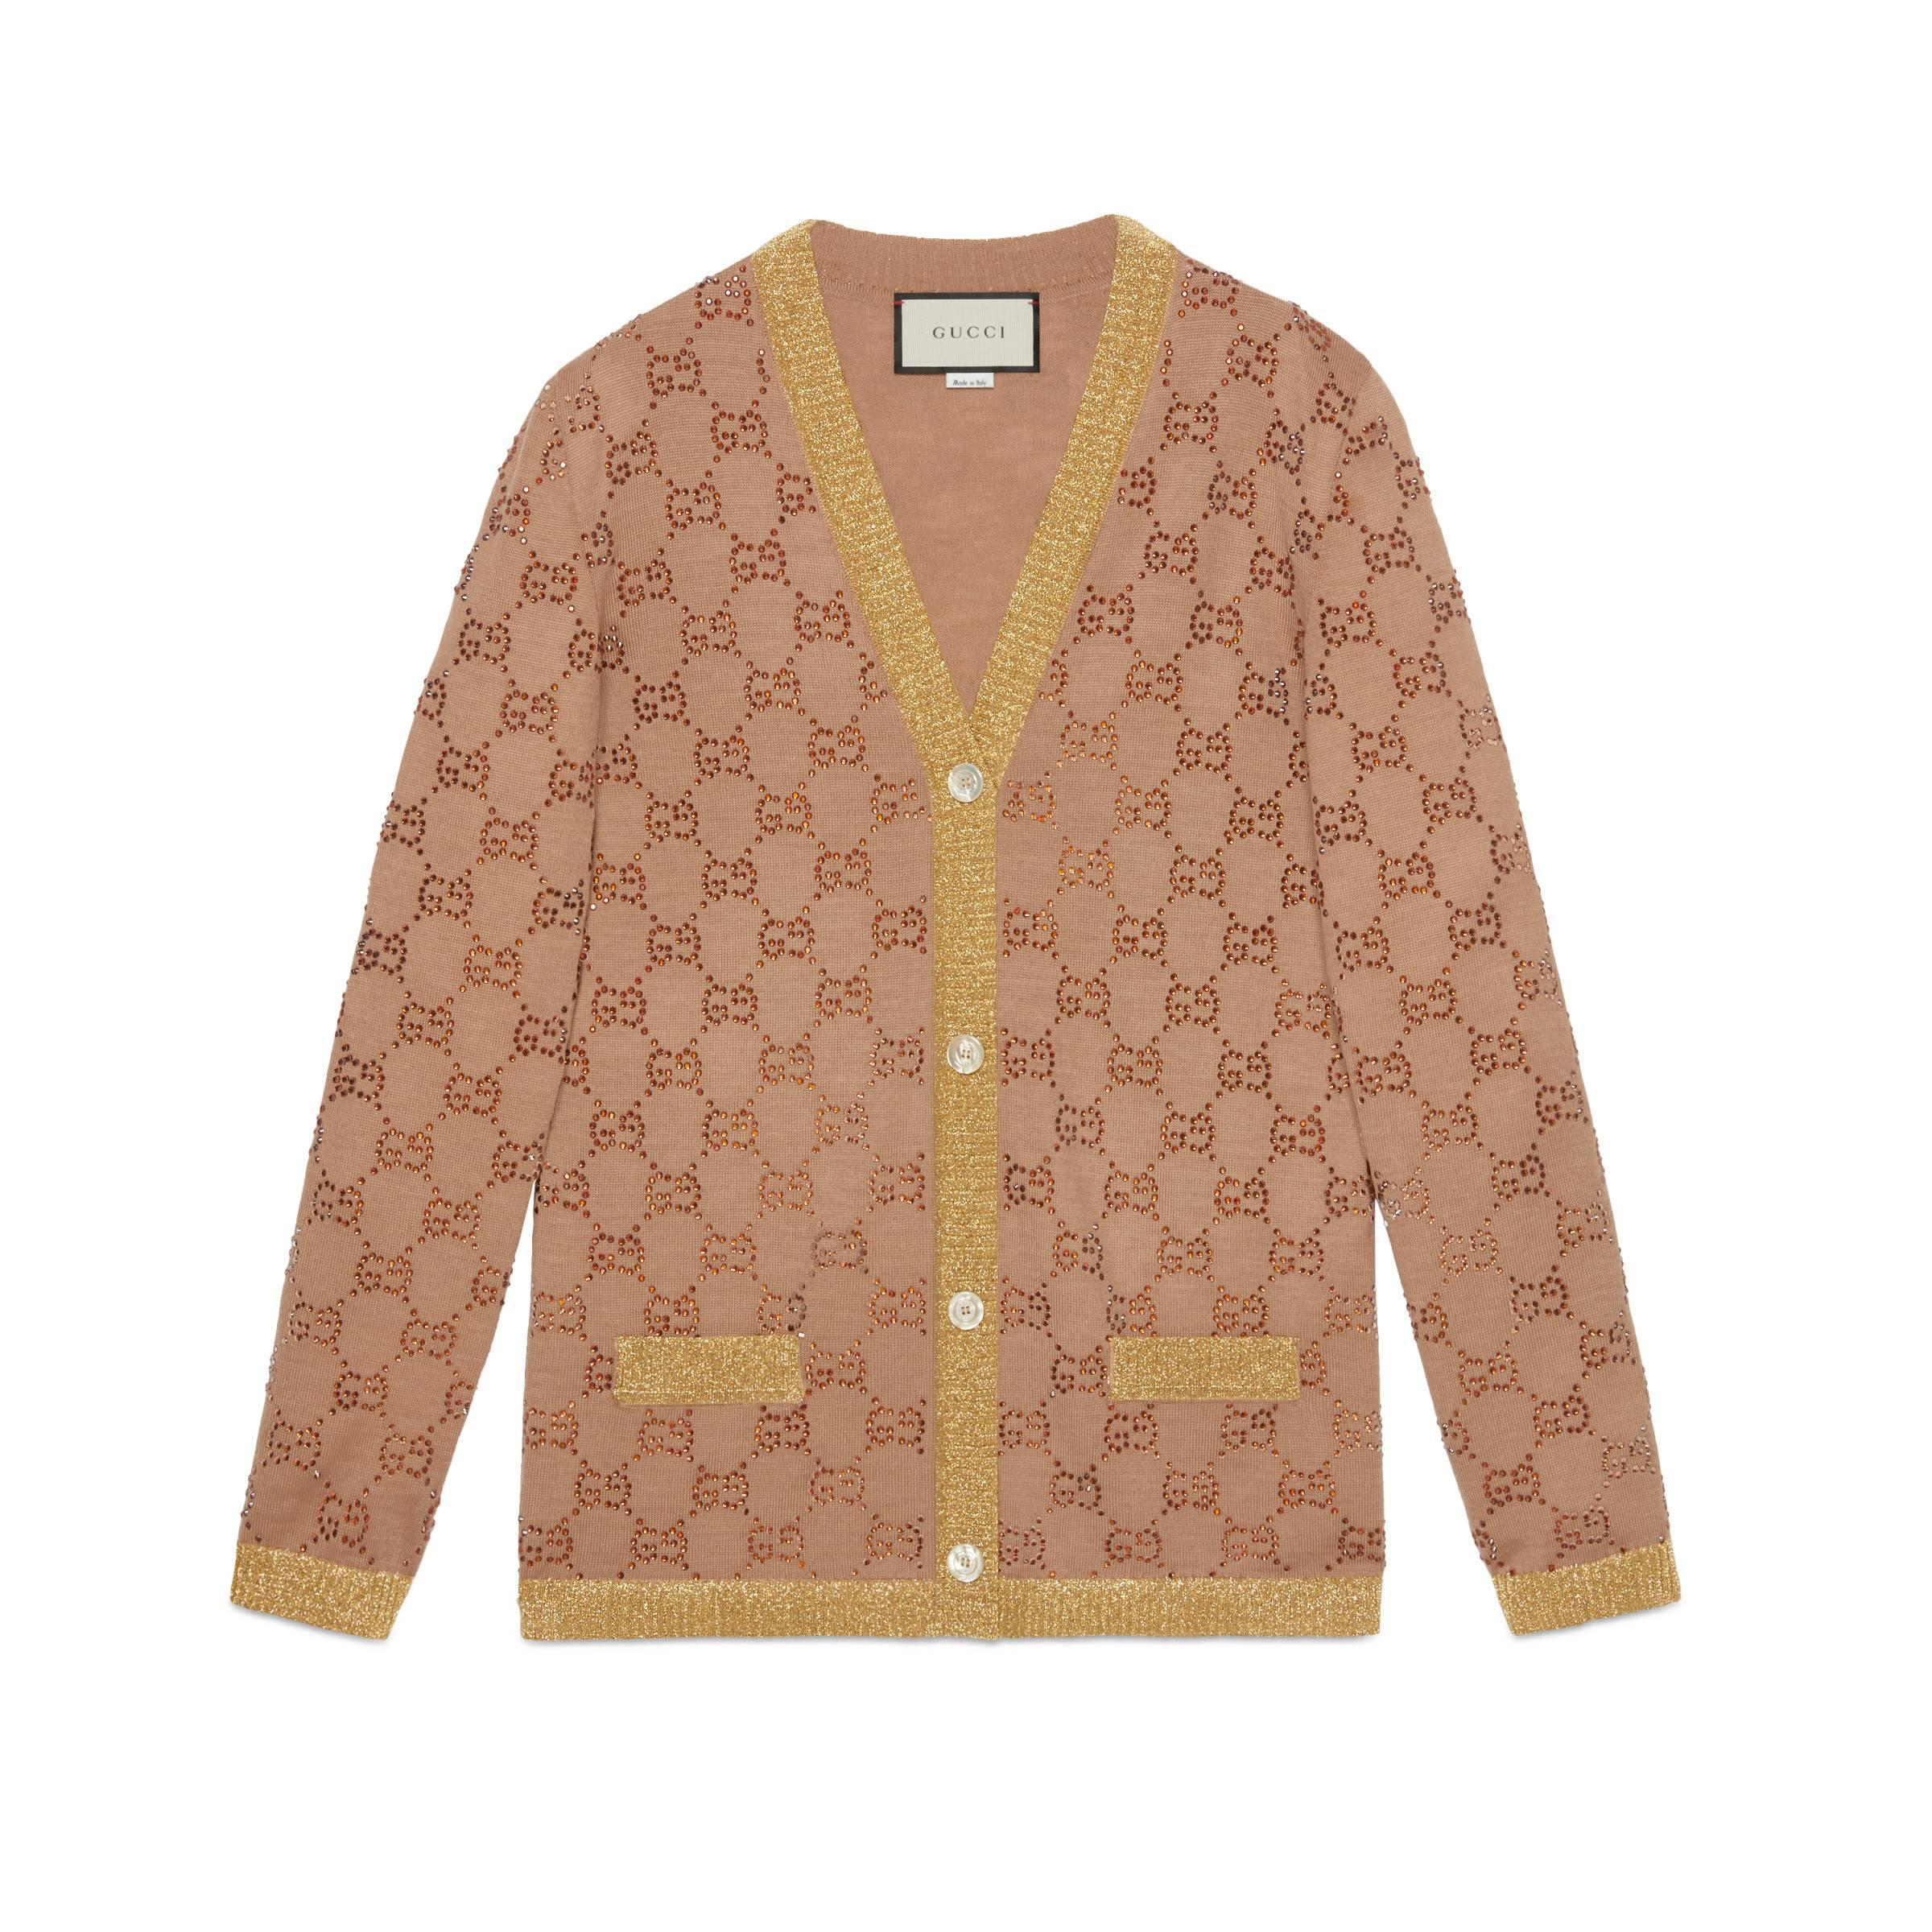 4a402626 Gucci Cardigan With Crystal GG Motif Beige in Natural - Lyst